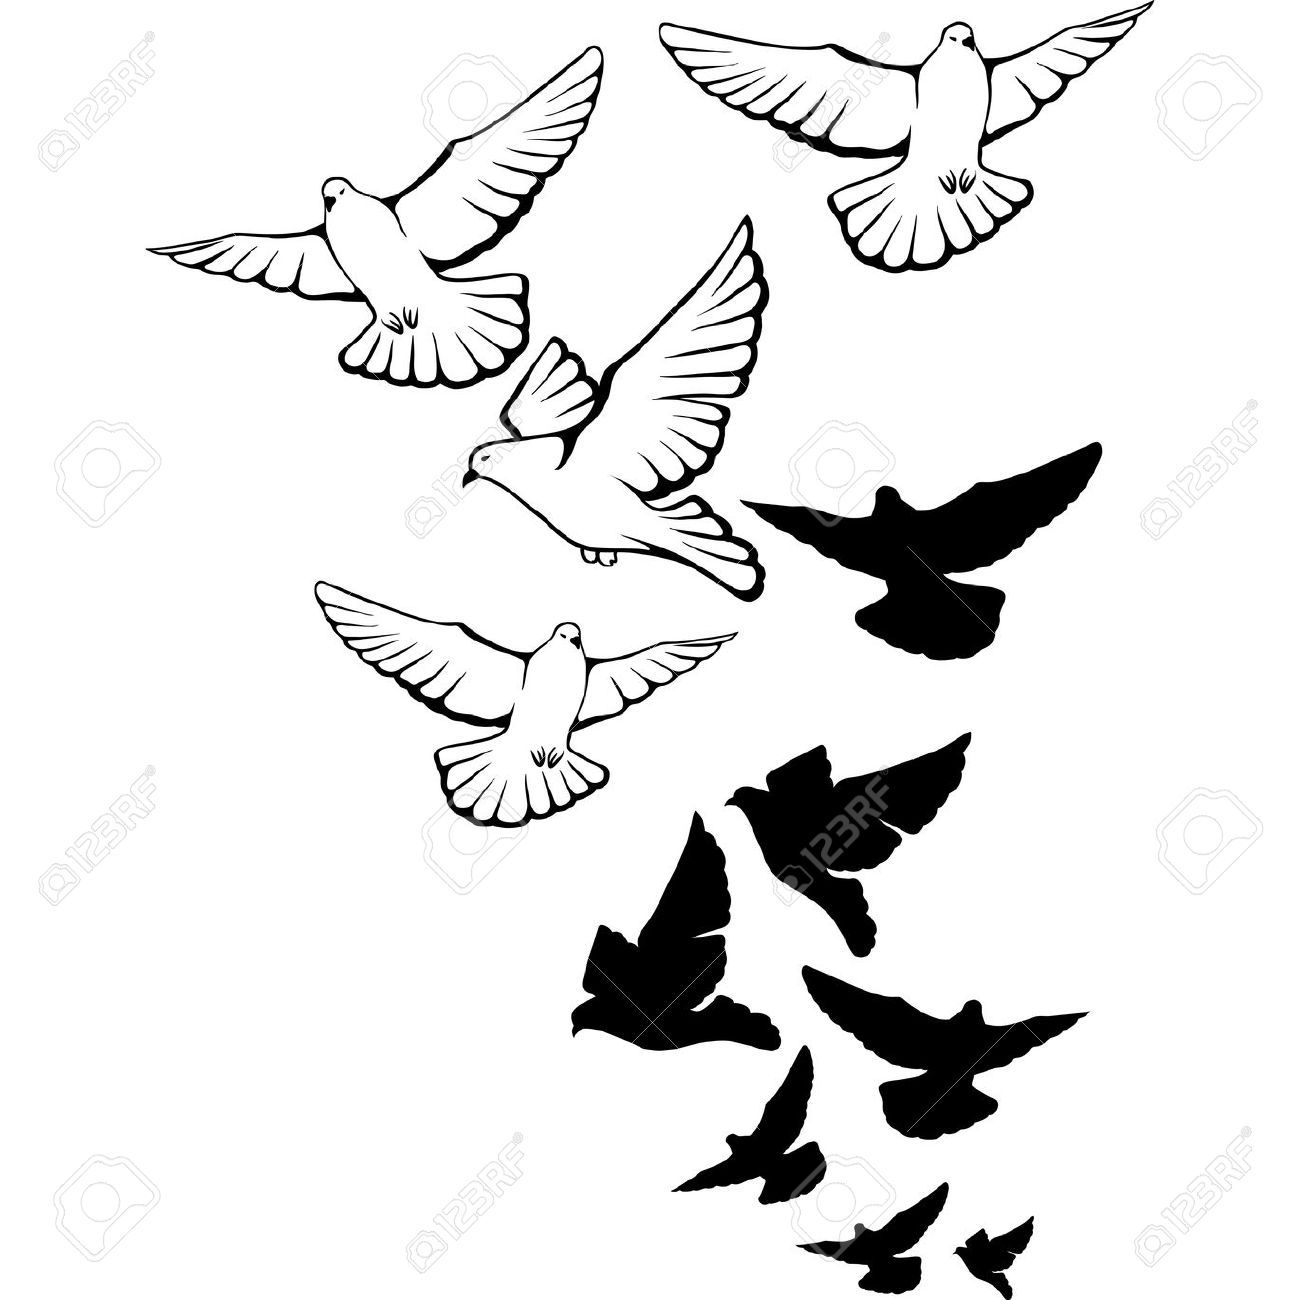 Birds Flying Clipart Black And